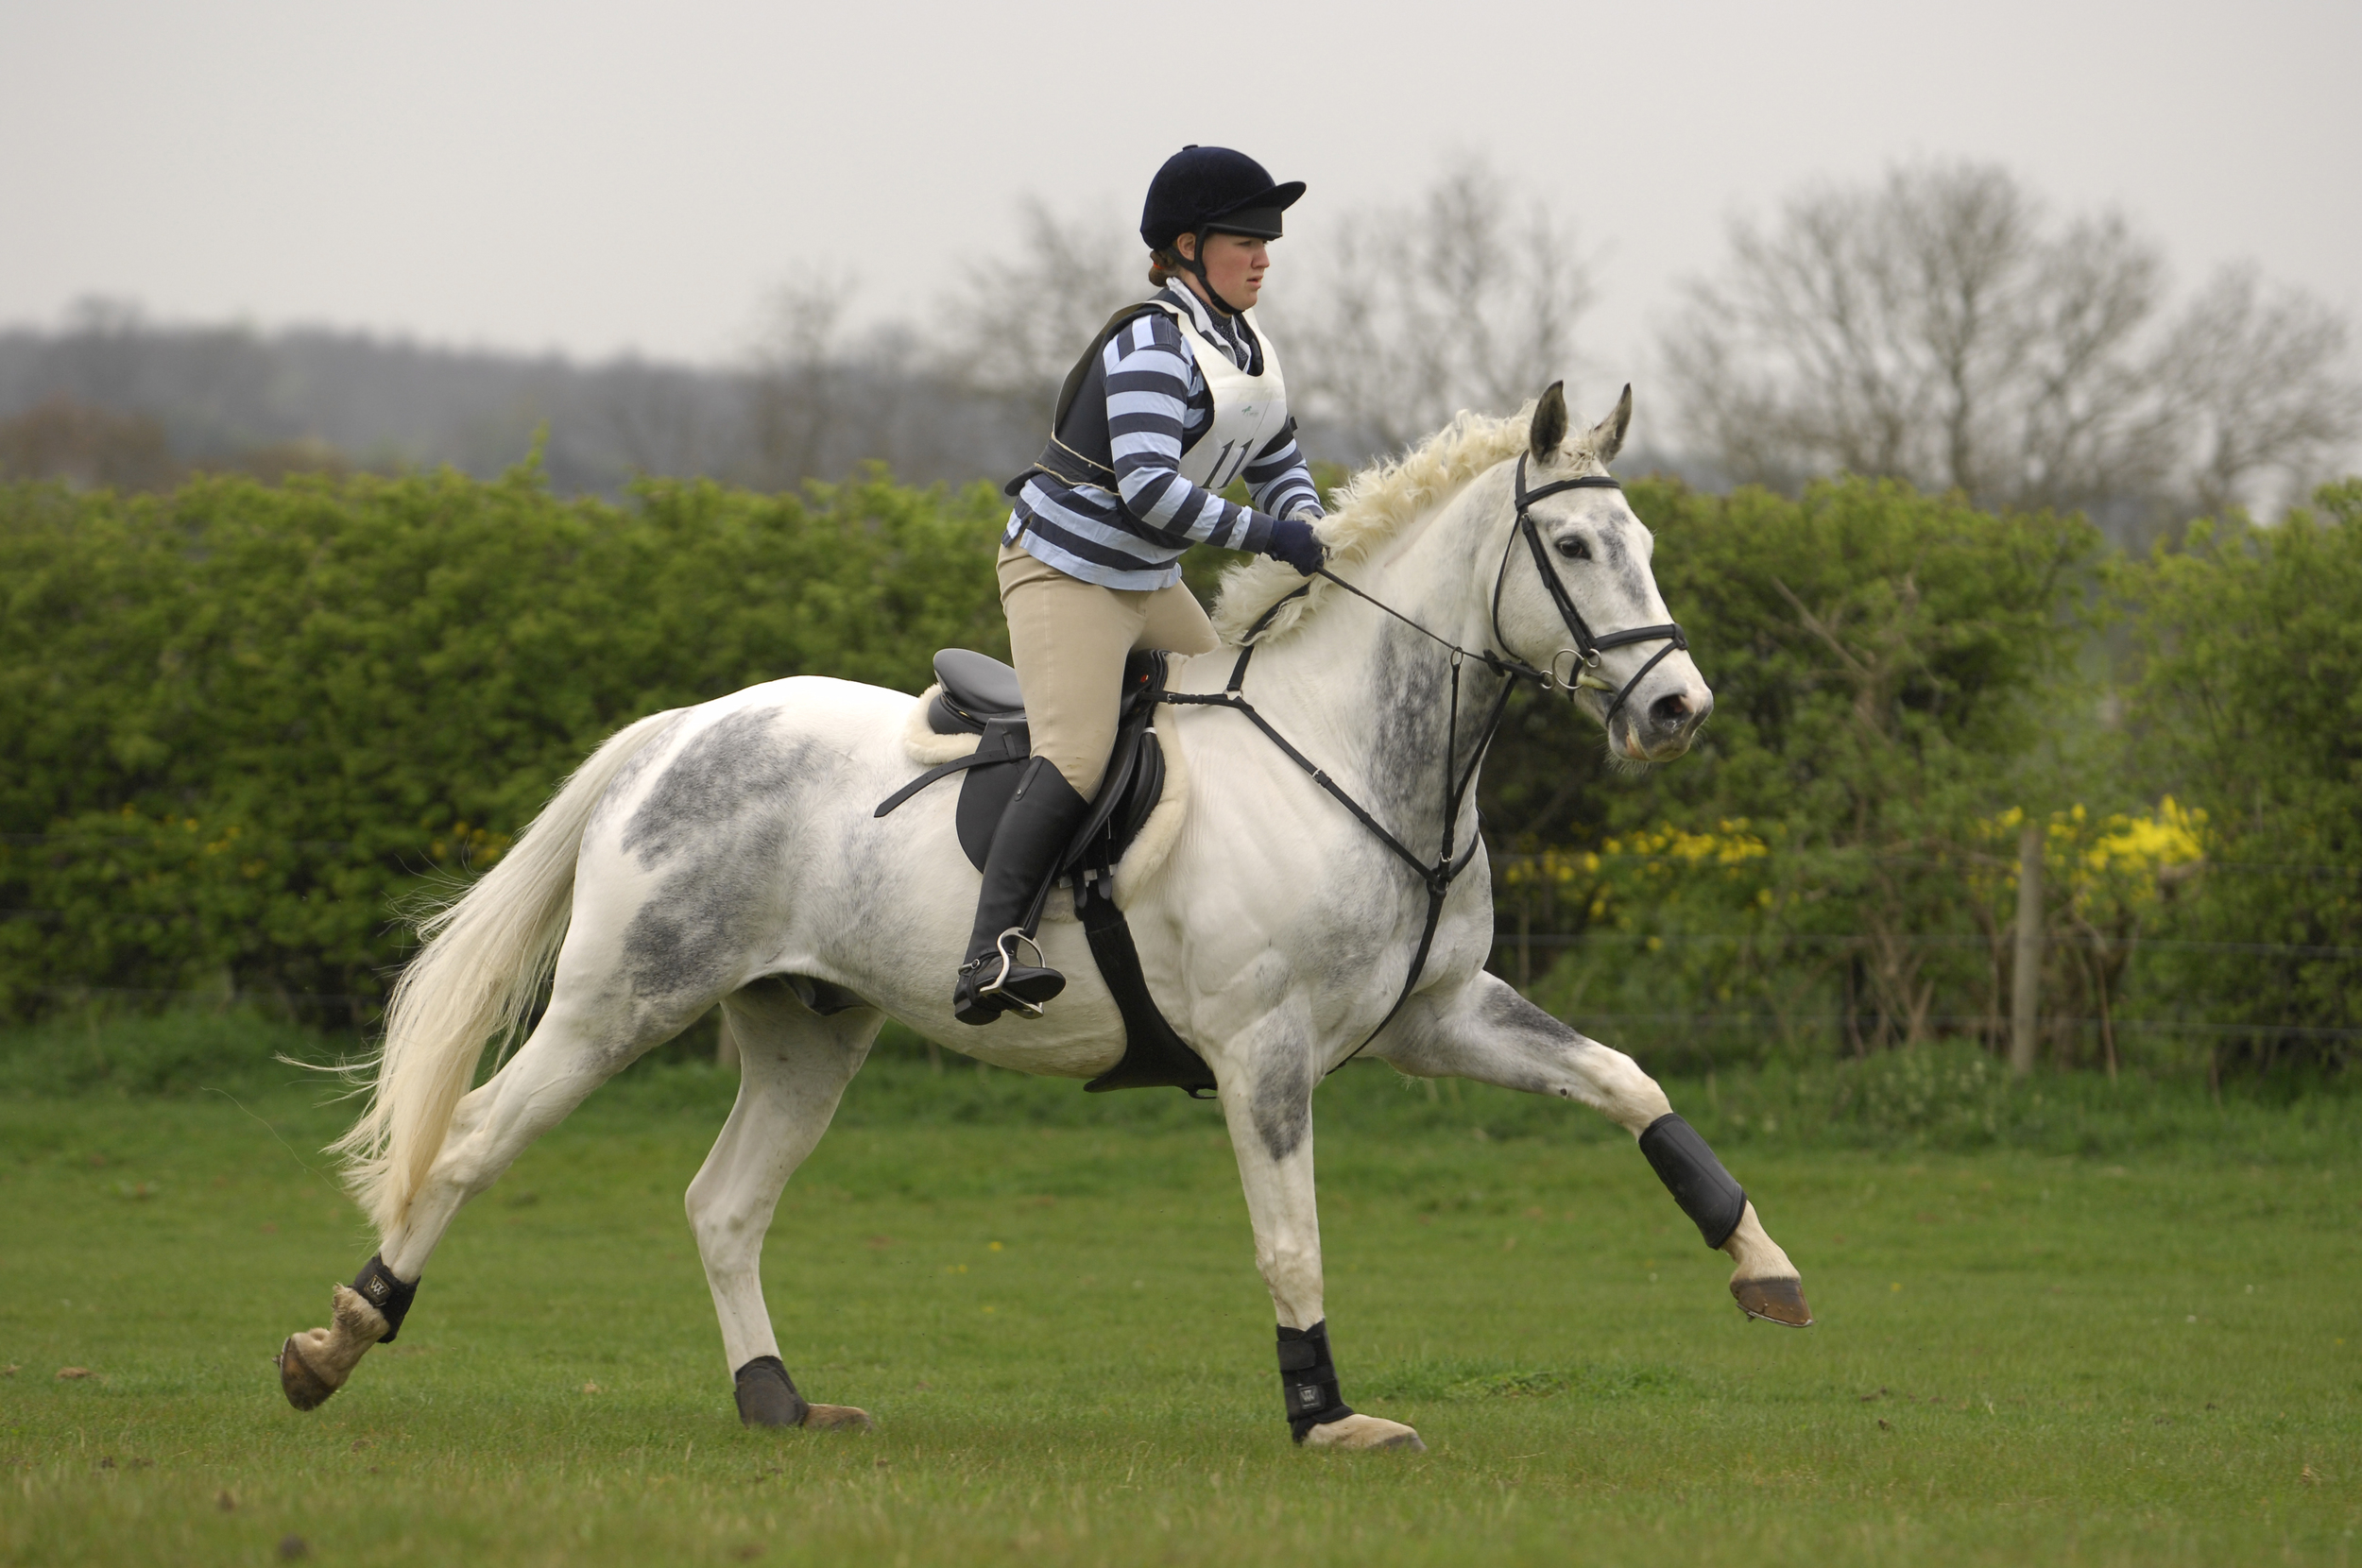 Competing your horse for the first time doesn't have to be terrifying